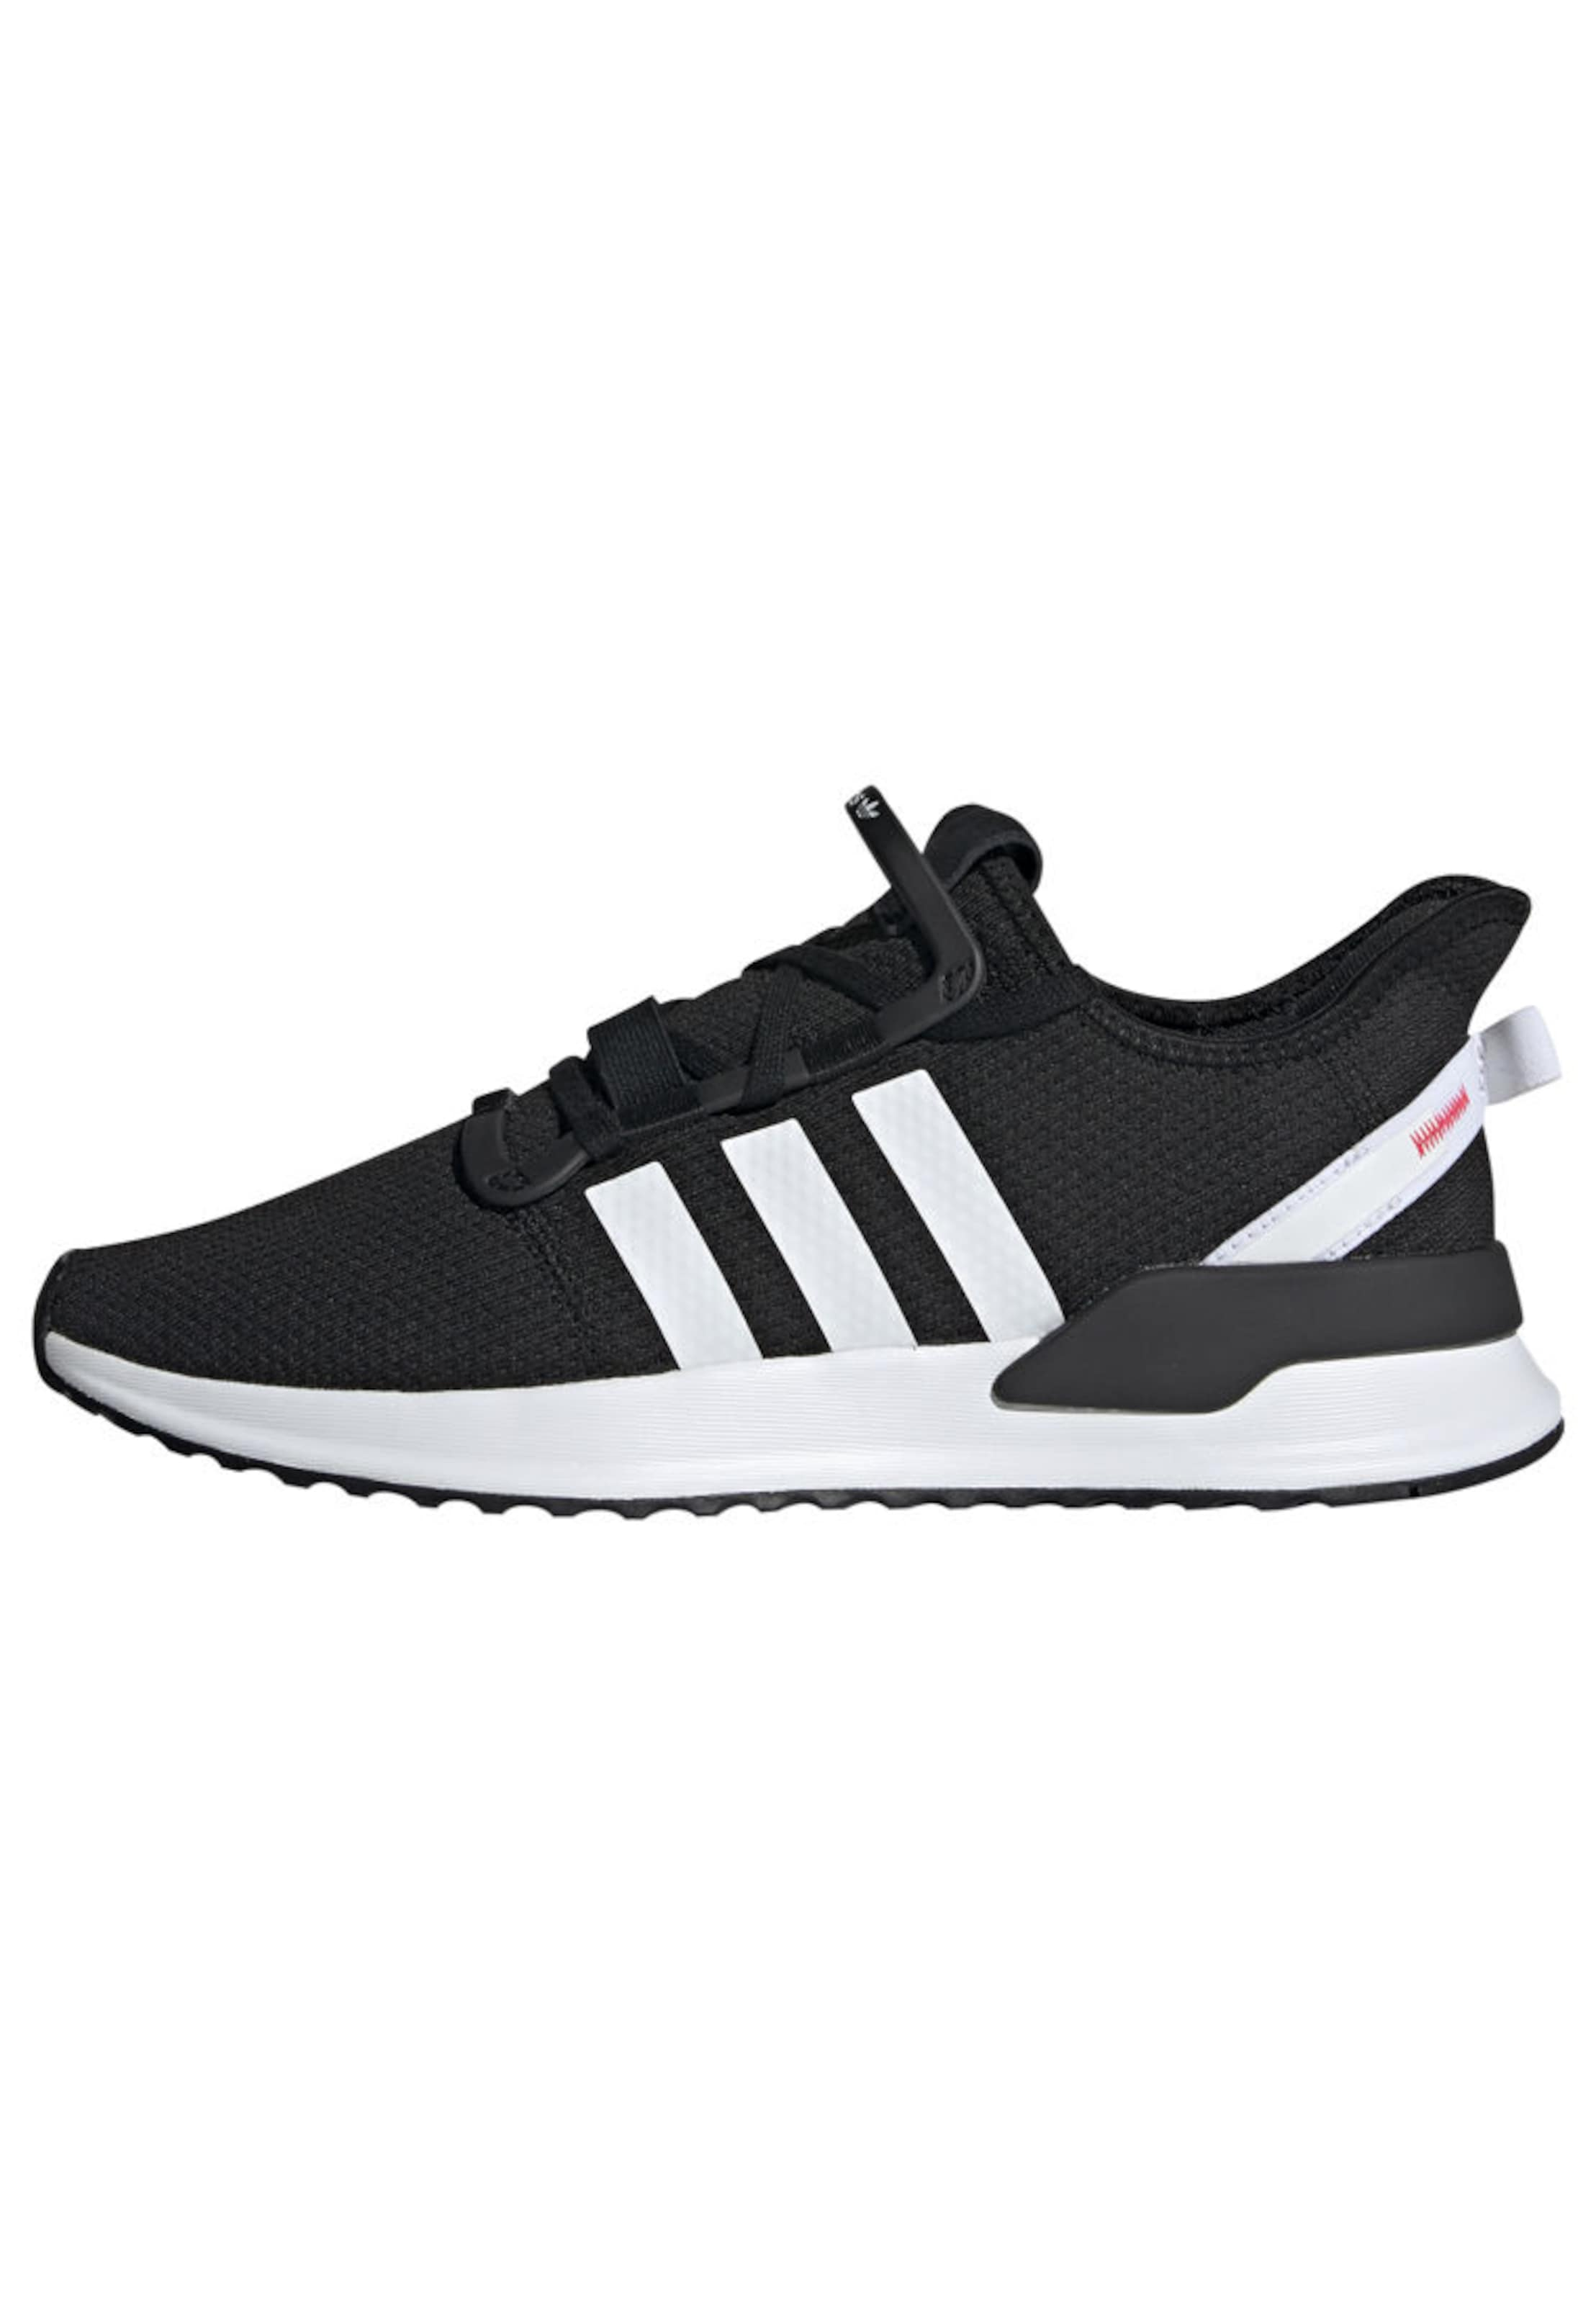 path Schwarz Run' Sneaker Originals In Adidas 'u qUMSpzV